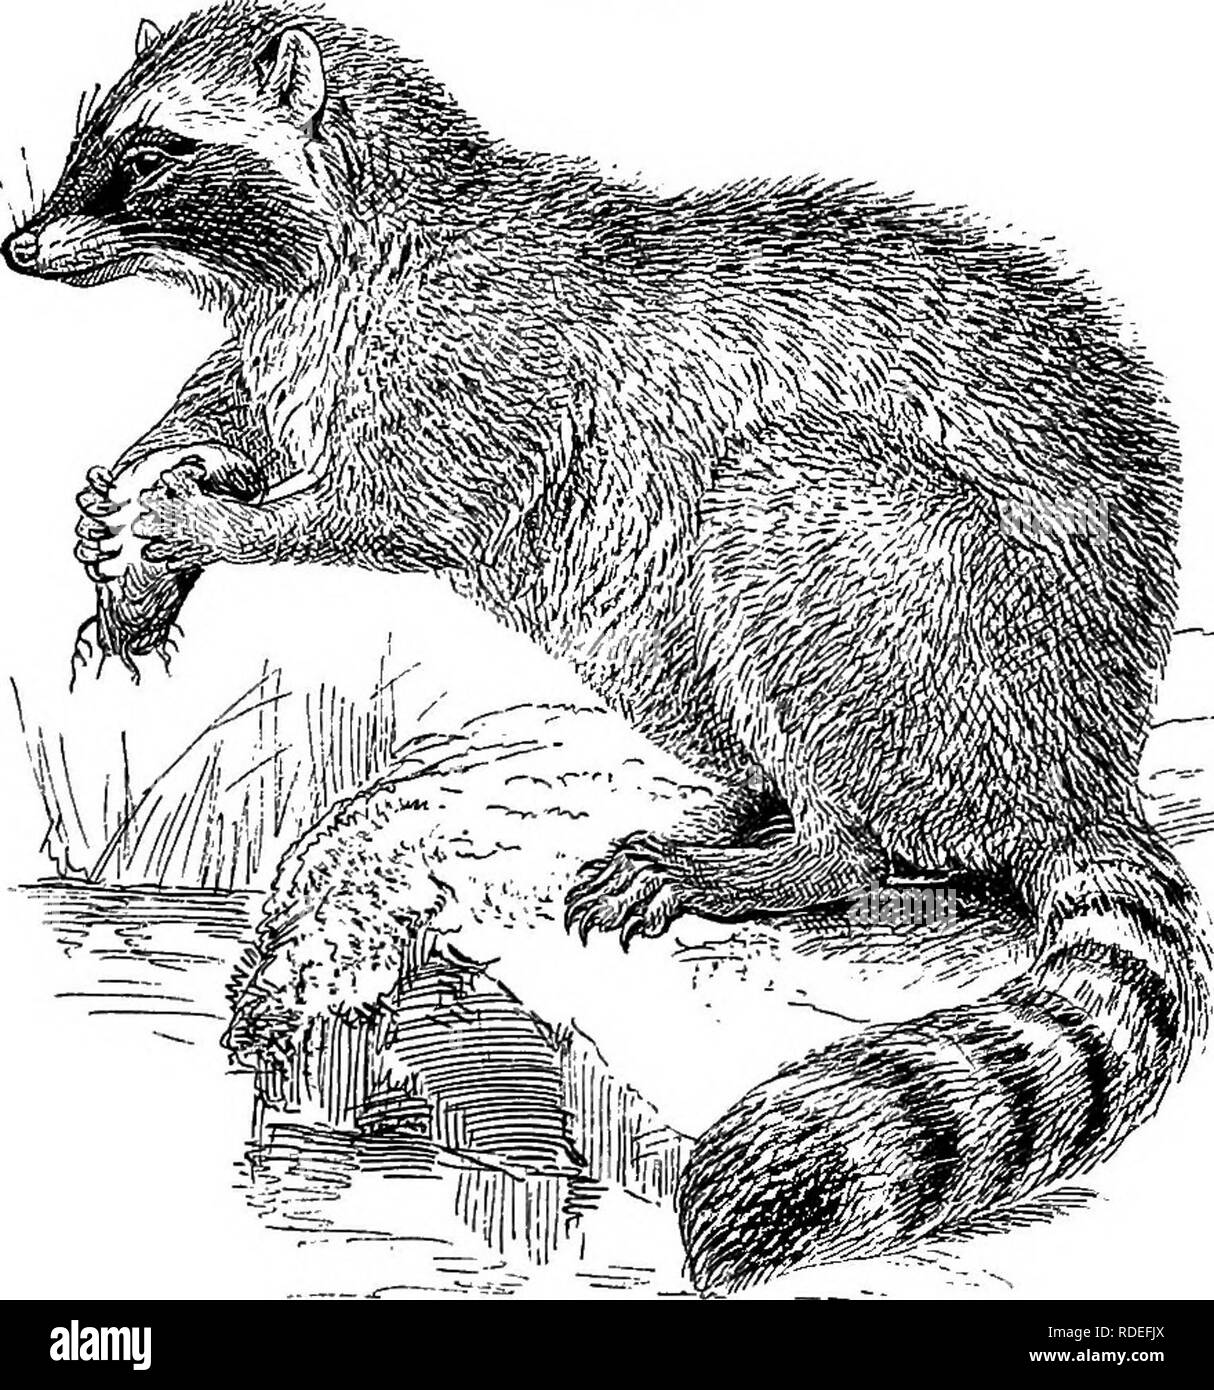 . American types of animal life. Zoology; Animal behavior. 212 TYPES OF ANIMAL LIFE racoons are caught in traps. They are not swift runners, and if pursued take to a tree. The racoon, though cap- able of being made a pet of, cannot be let loose with inipunity, on account of its great curiosity, which leads Fig. 58.. THE RACOON, it to find its way into the house and examine everything. It is very fond of sweets, and will remove covers from dishes, corks from bottles, and soon learn to unlatch doors. Its natural range extends all over the United States, both north to Alaska, and south to Costa E - Stock Image